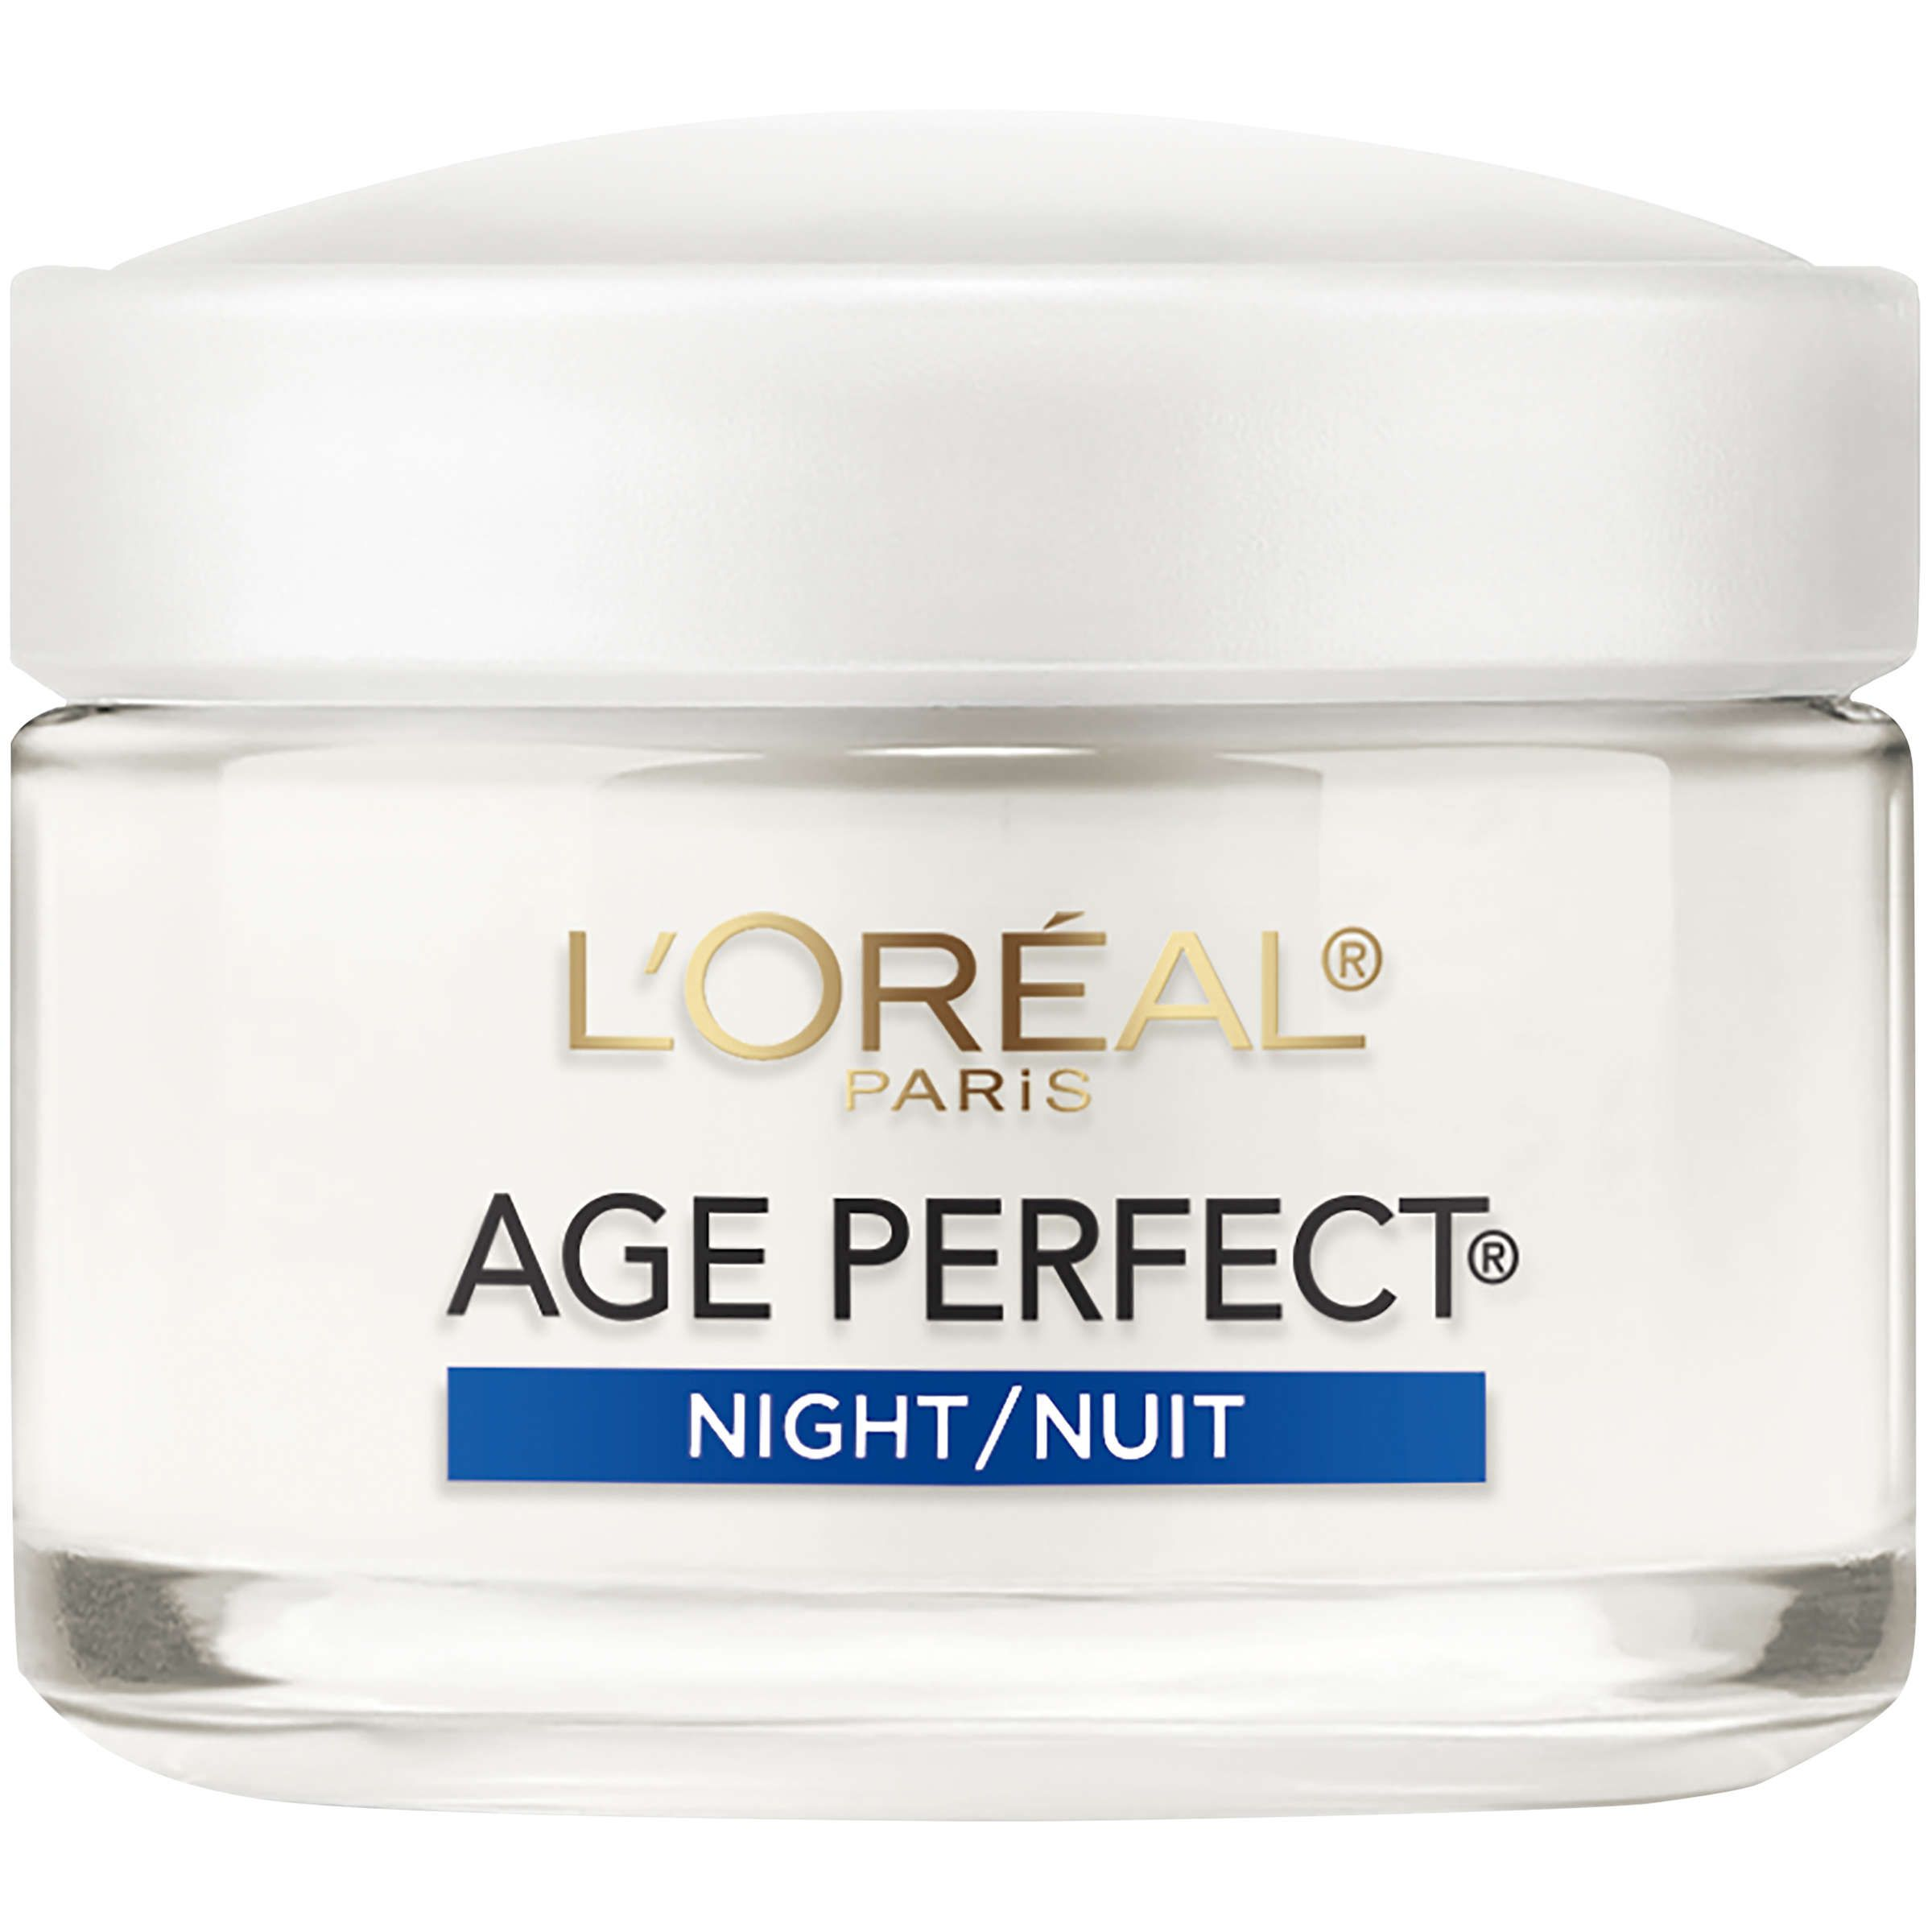 The 8 Best Drugstore Night Creams That Boost Your Skin Overnight